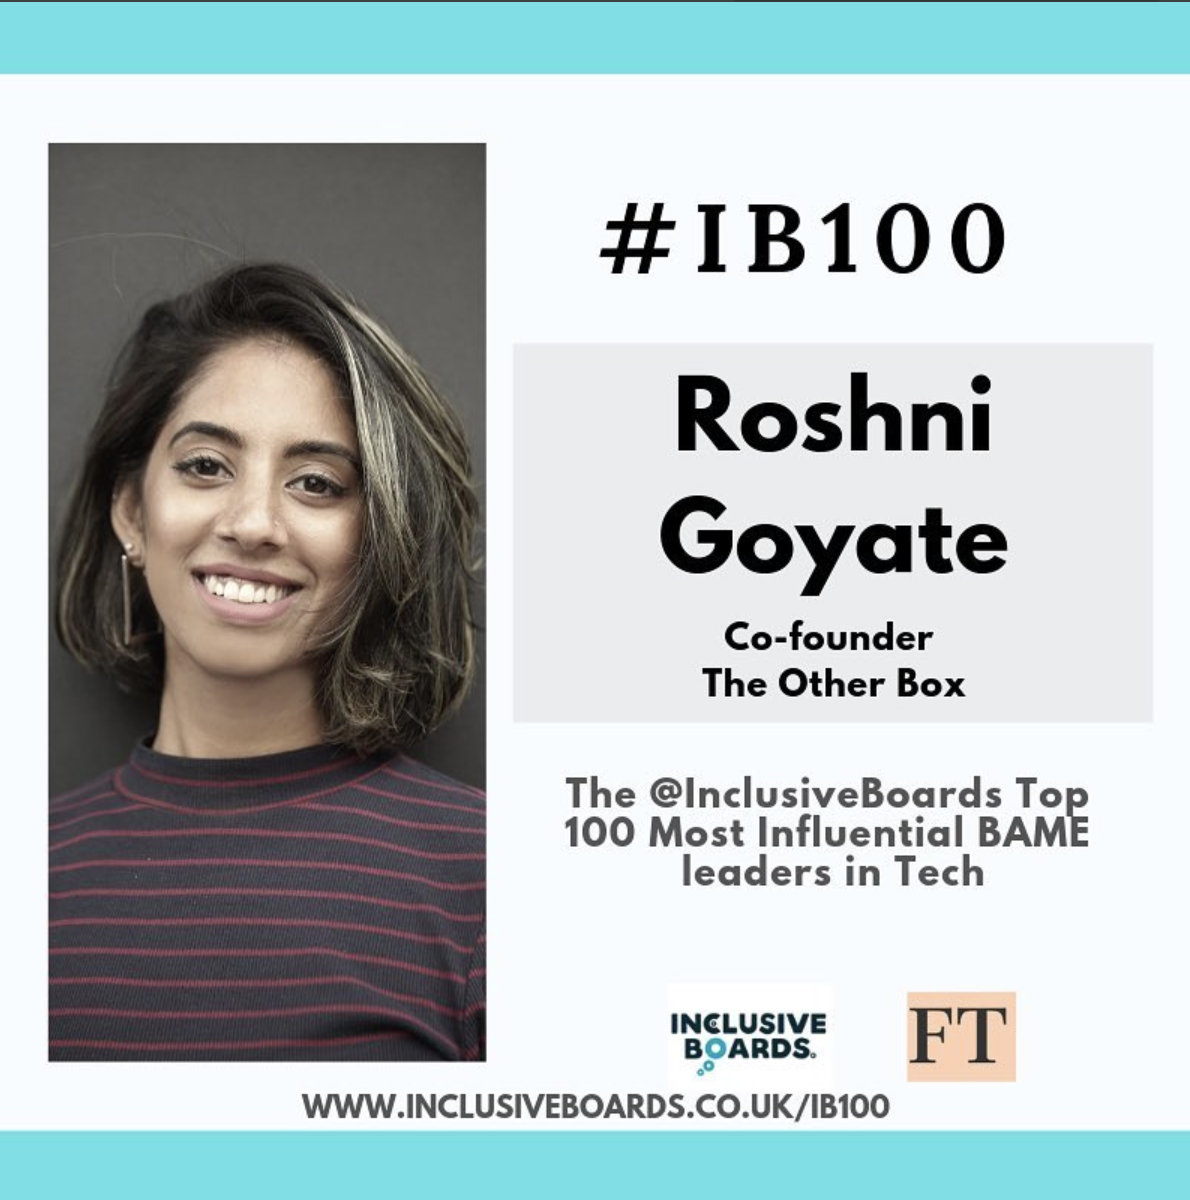 Financial Times + Inclusive Boards  ACCOLADE  We're so so pleased to announce that our co-founder Roshni has made the  #IB100 , as one of  #InclusiveBoards  top 100 most influential BAME leaders in tech. She's currently at the House of Commons celebrating with fellow listers at the launch of  #TechAllianceUK . You can check out the full list below!